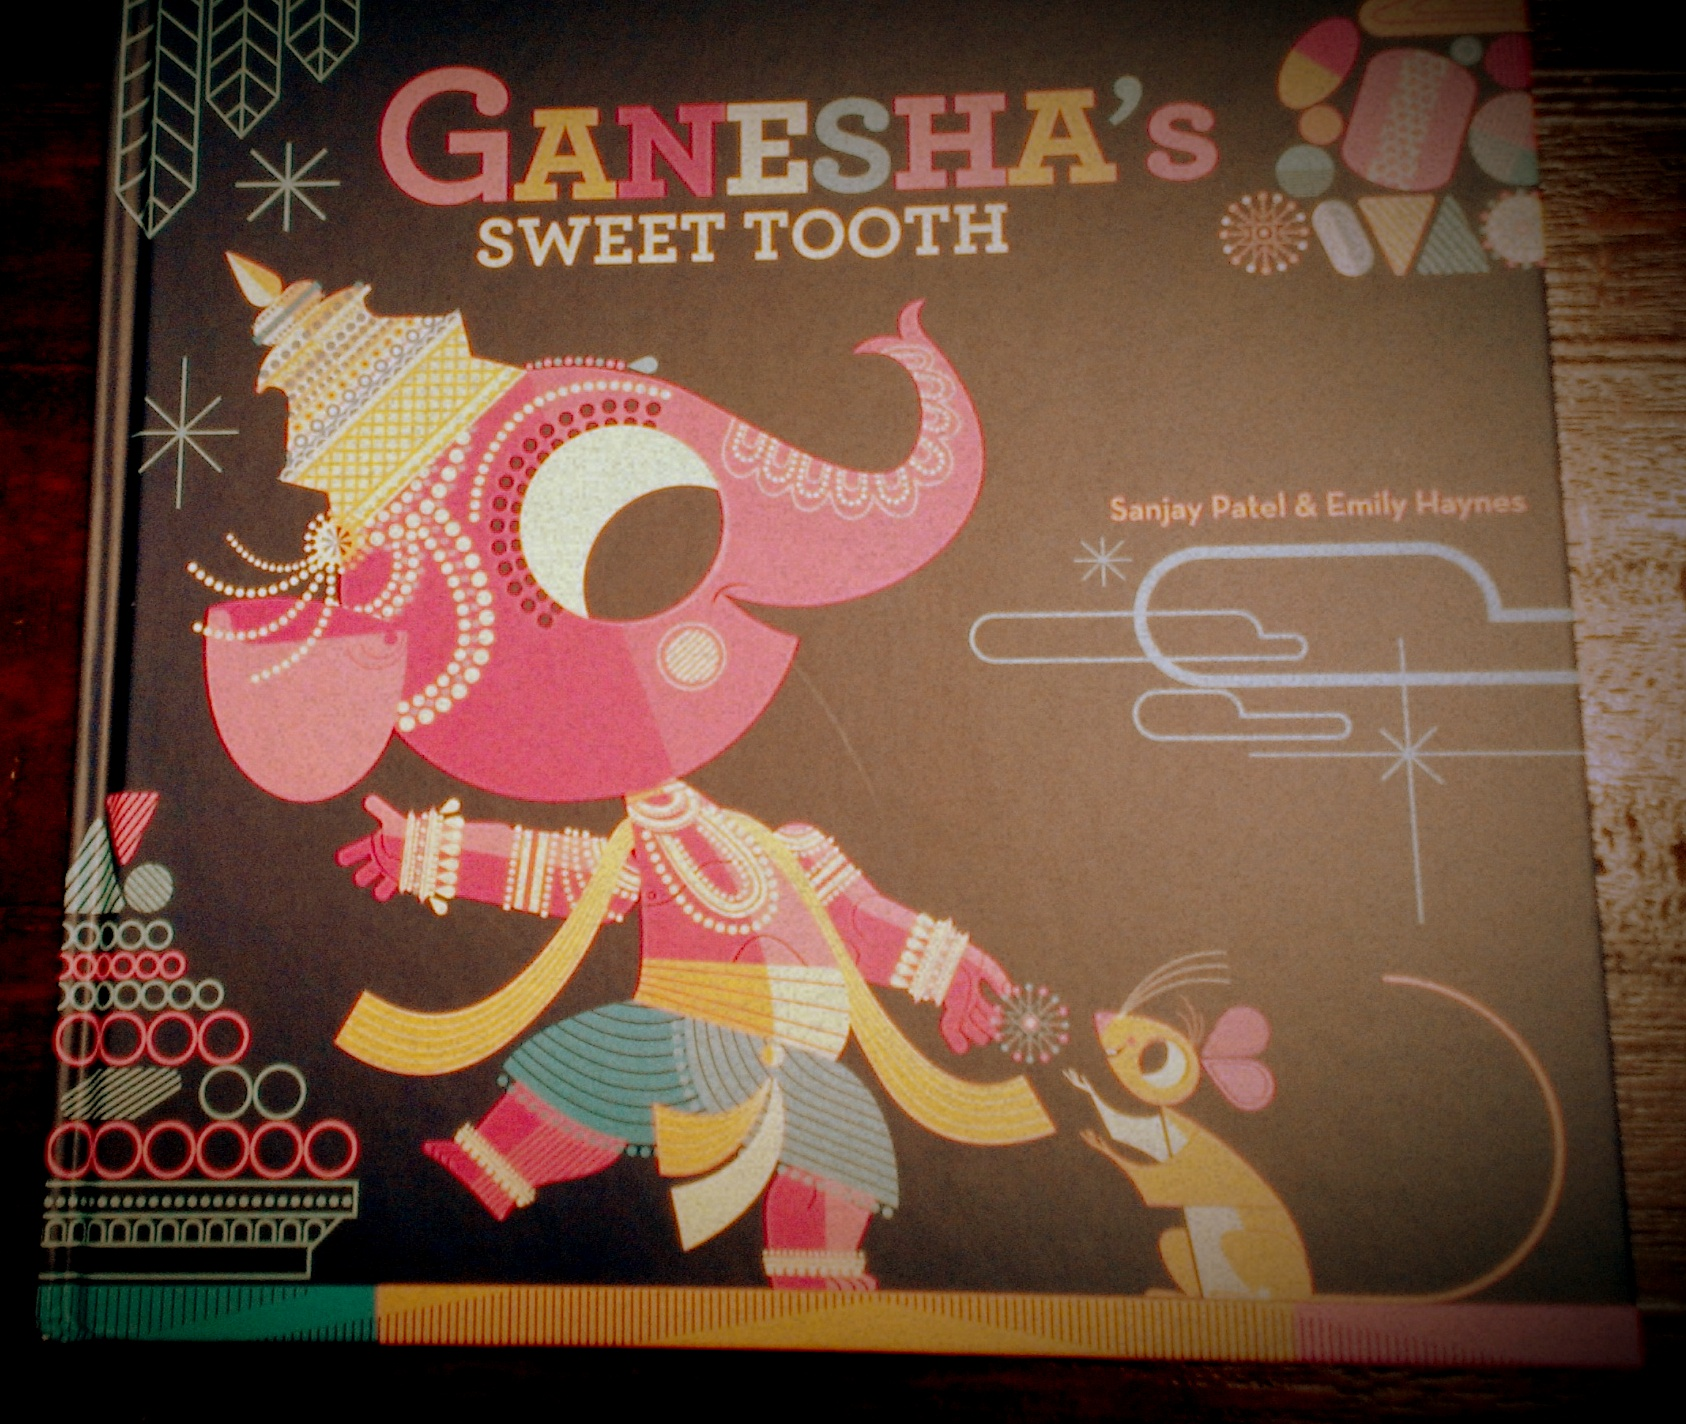 Ganesha's Sweet Tooth: Great book for kids